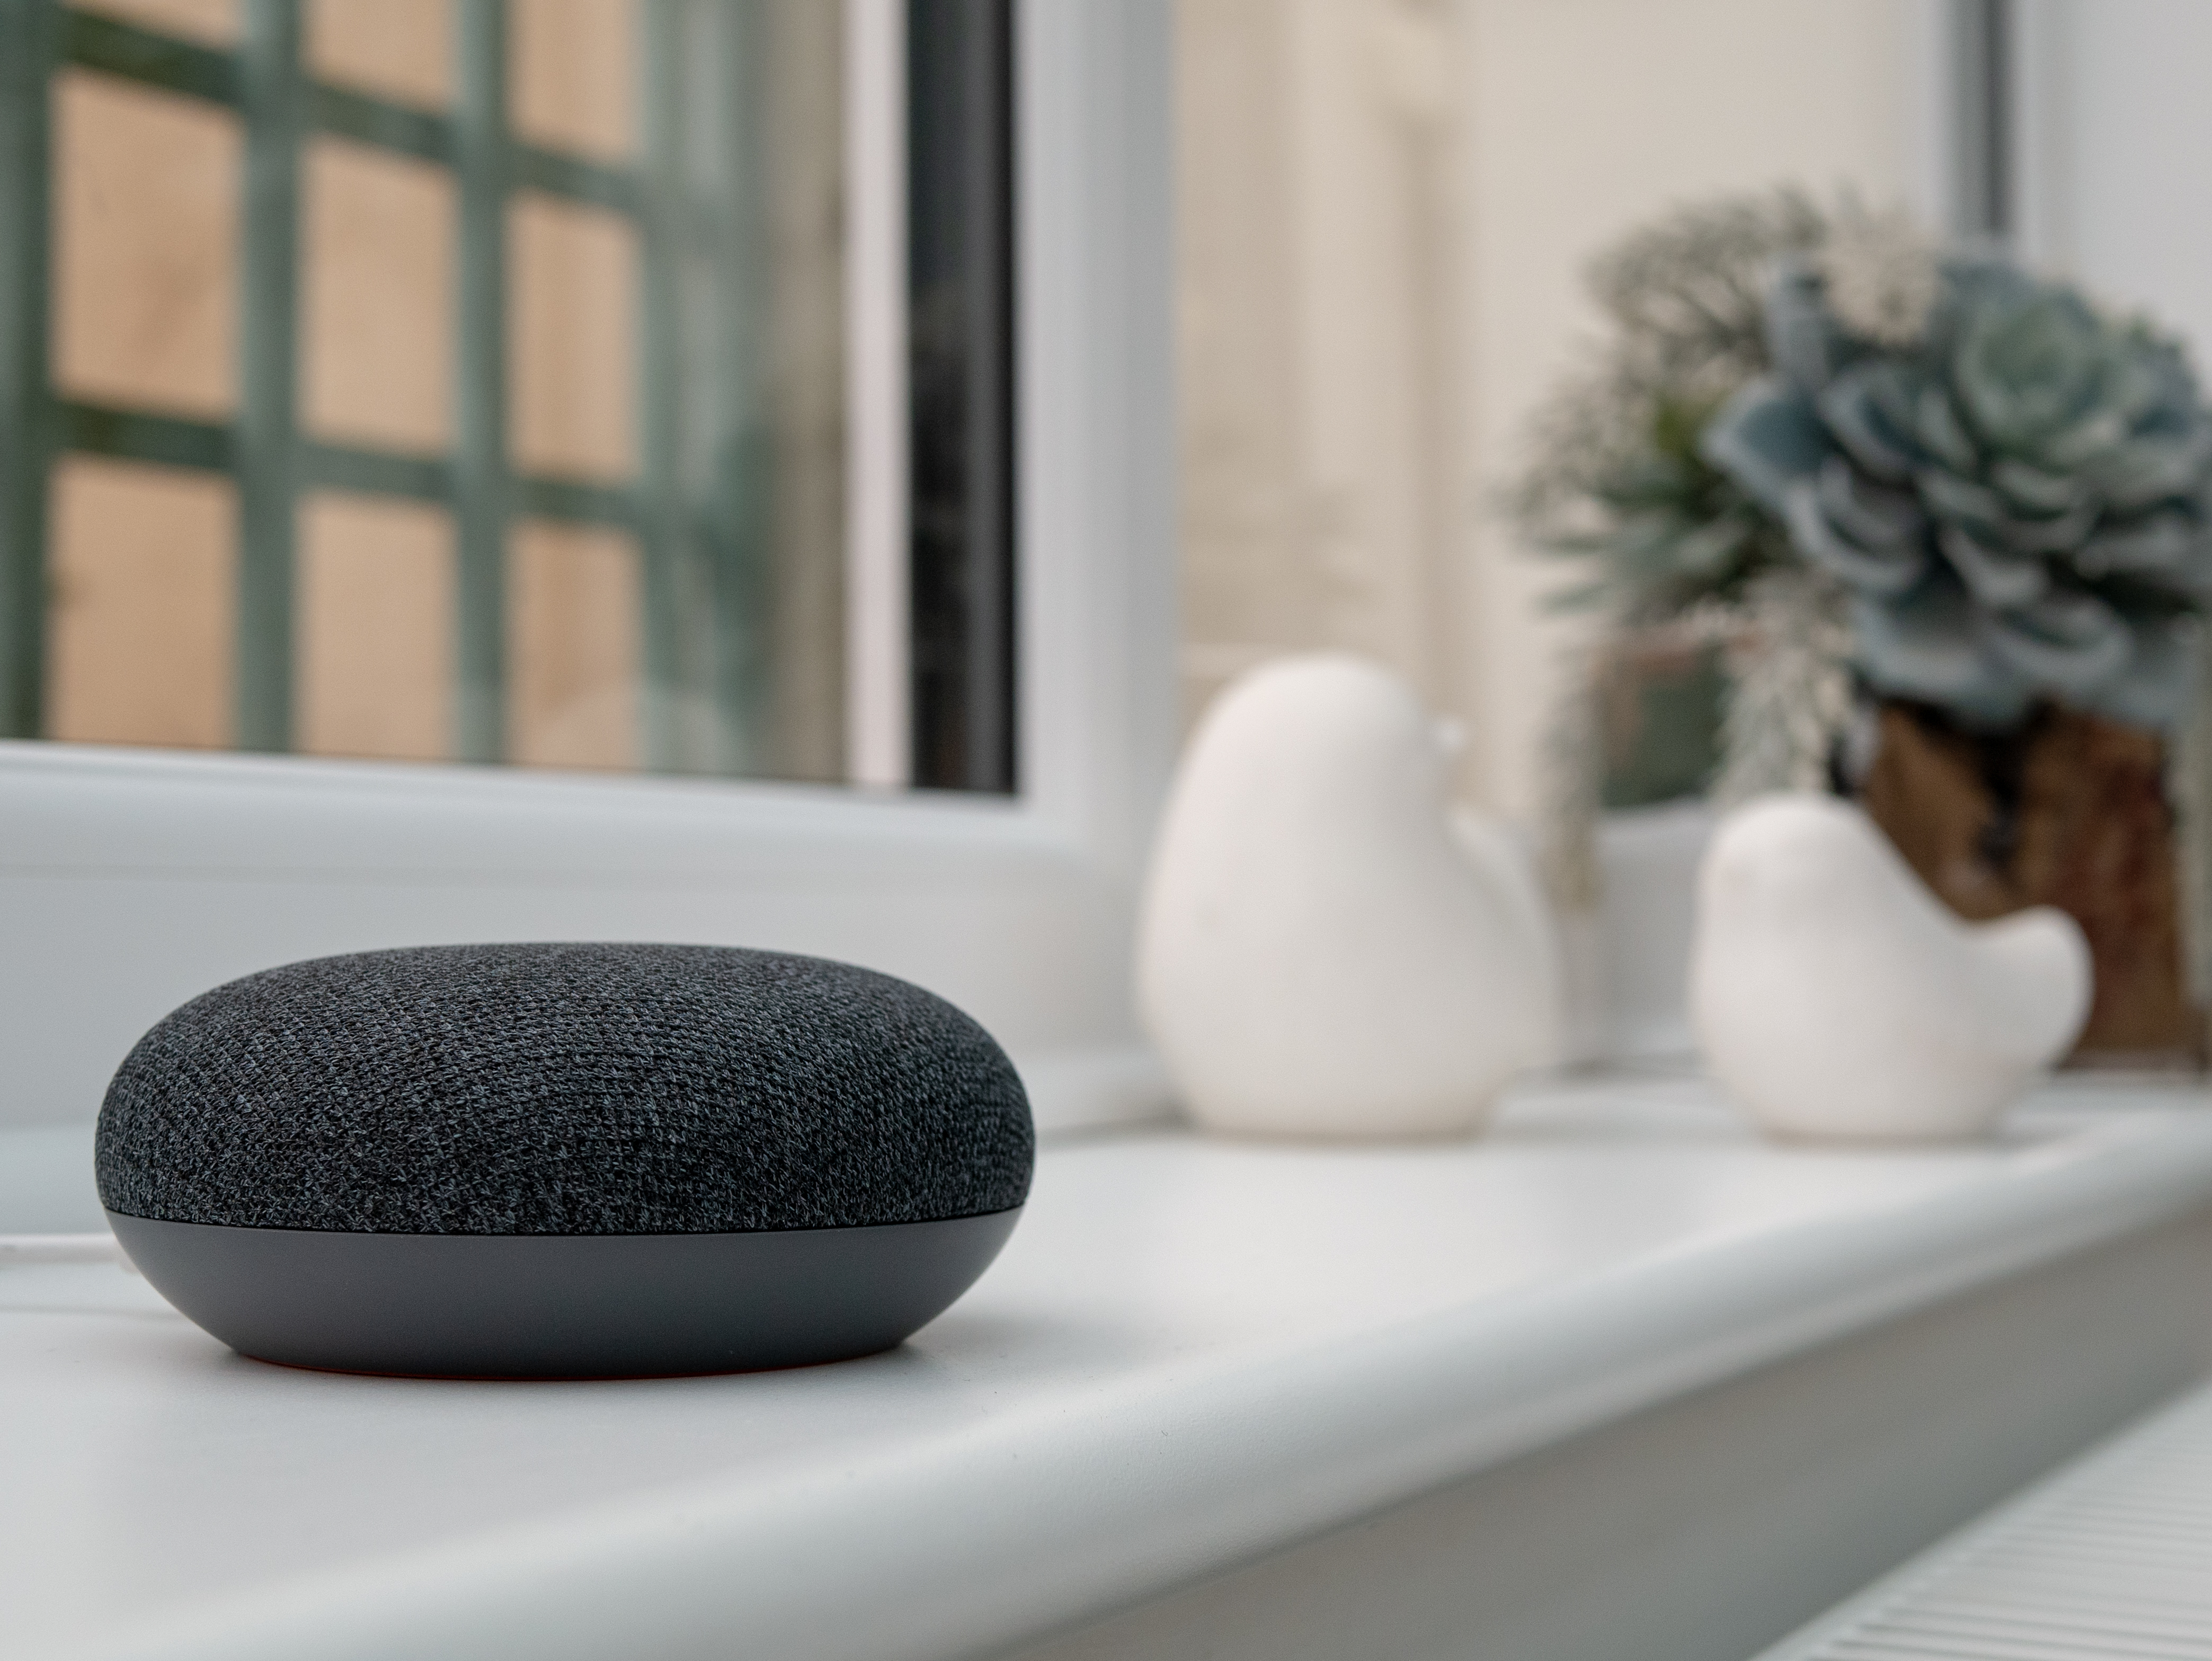 The future of smart home devices includes AI-powered voice command